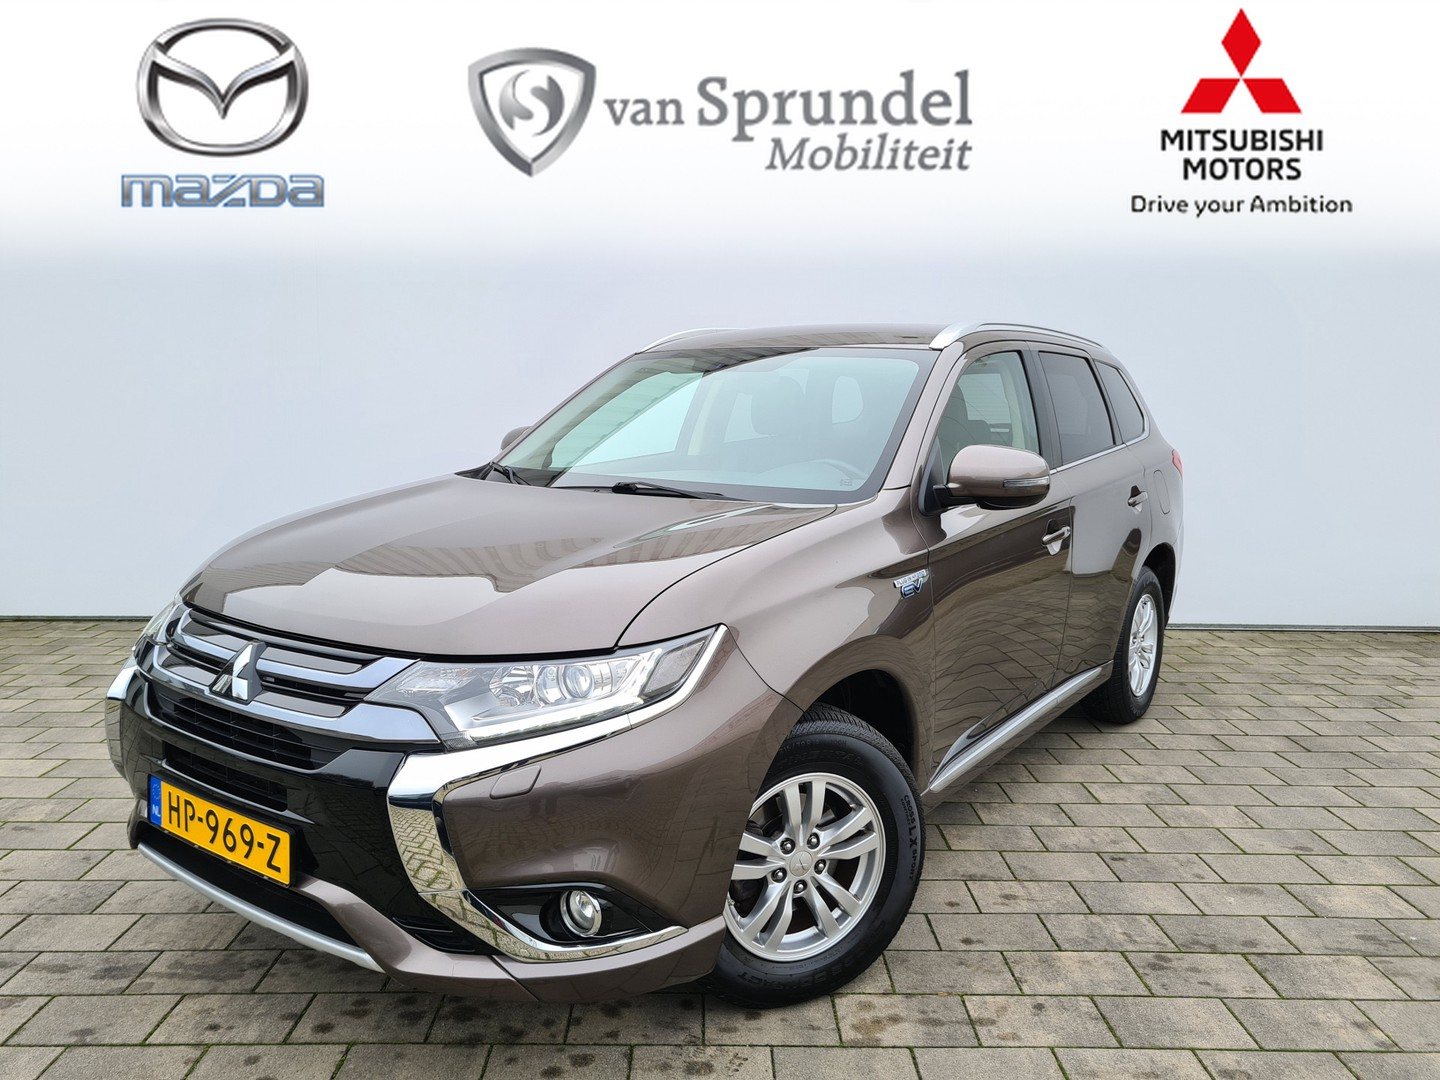 Mitsubishi Outlander 2.0 phev business edition facelift incl. btw